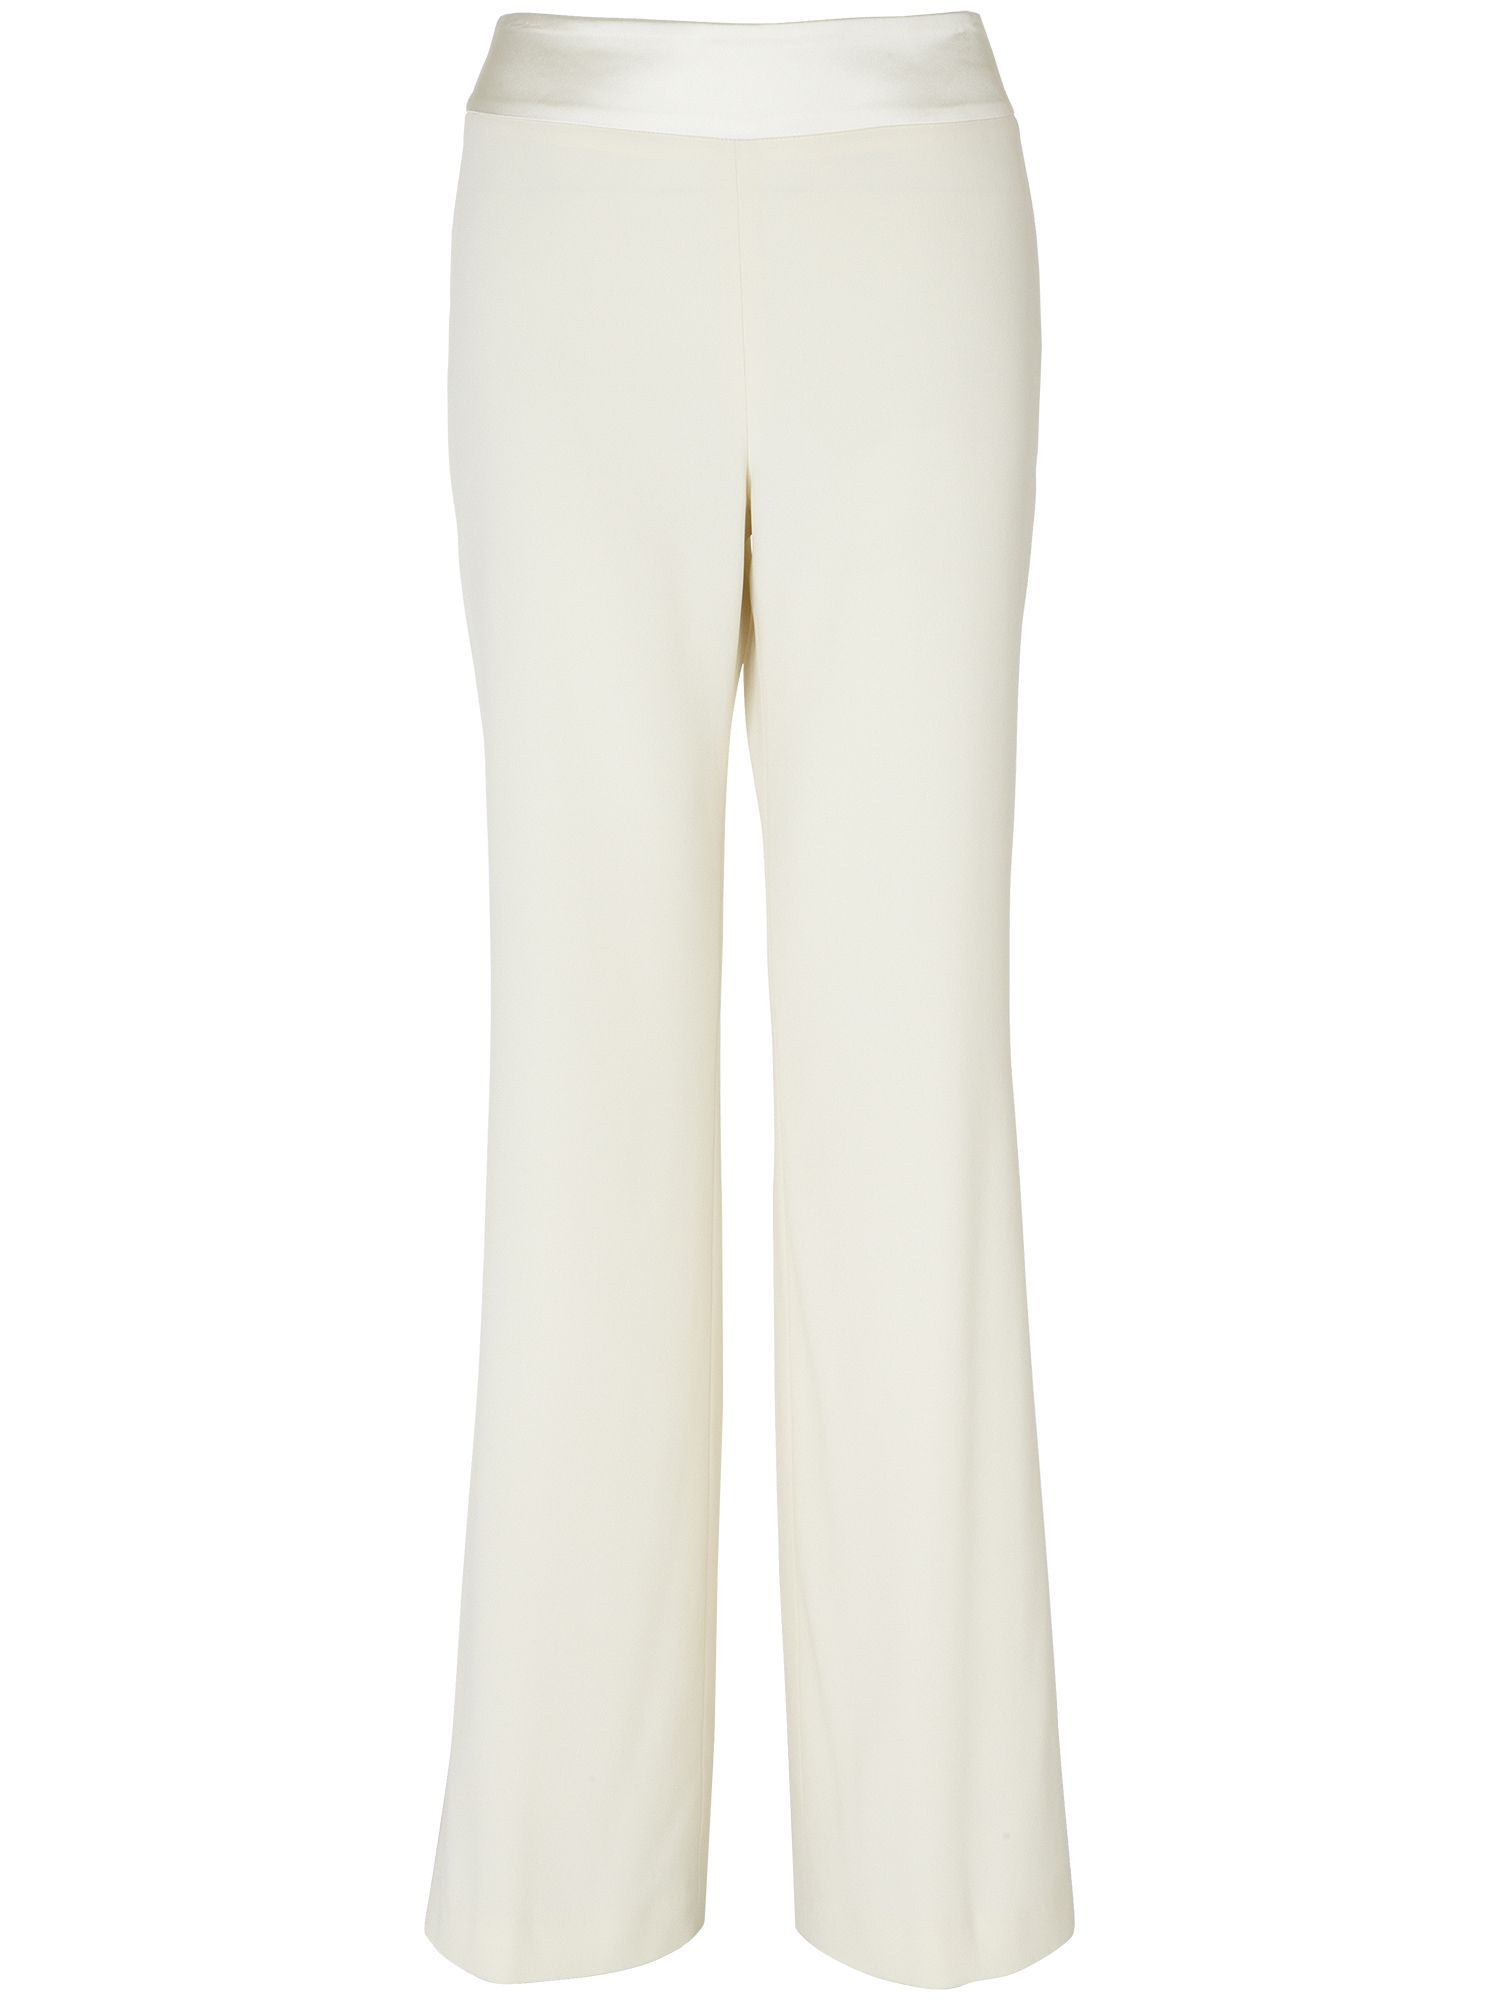 Satin back crepe trousers